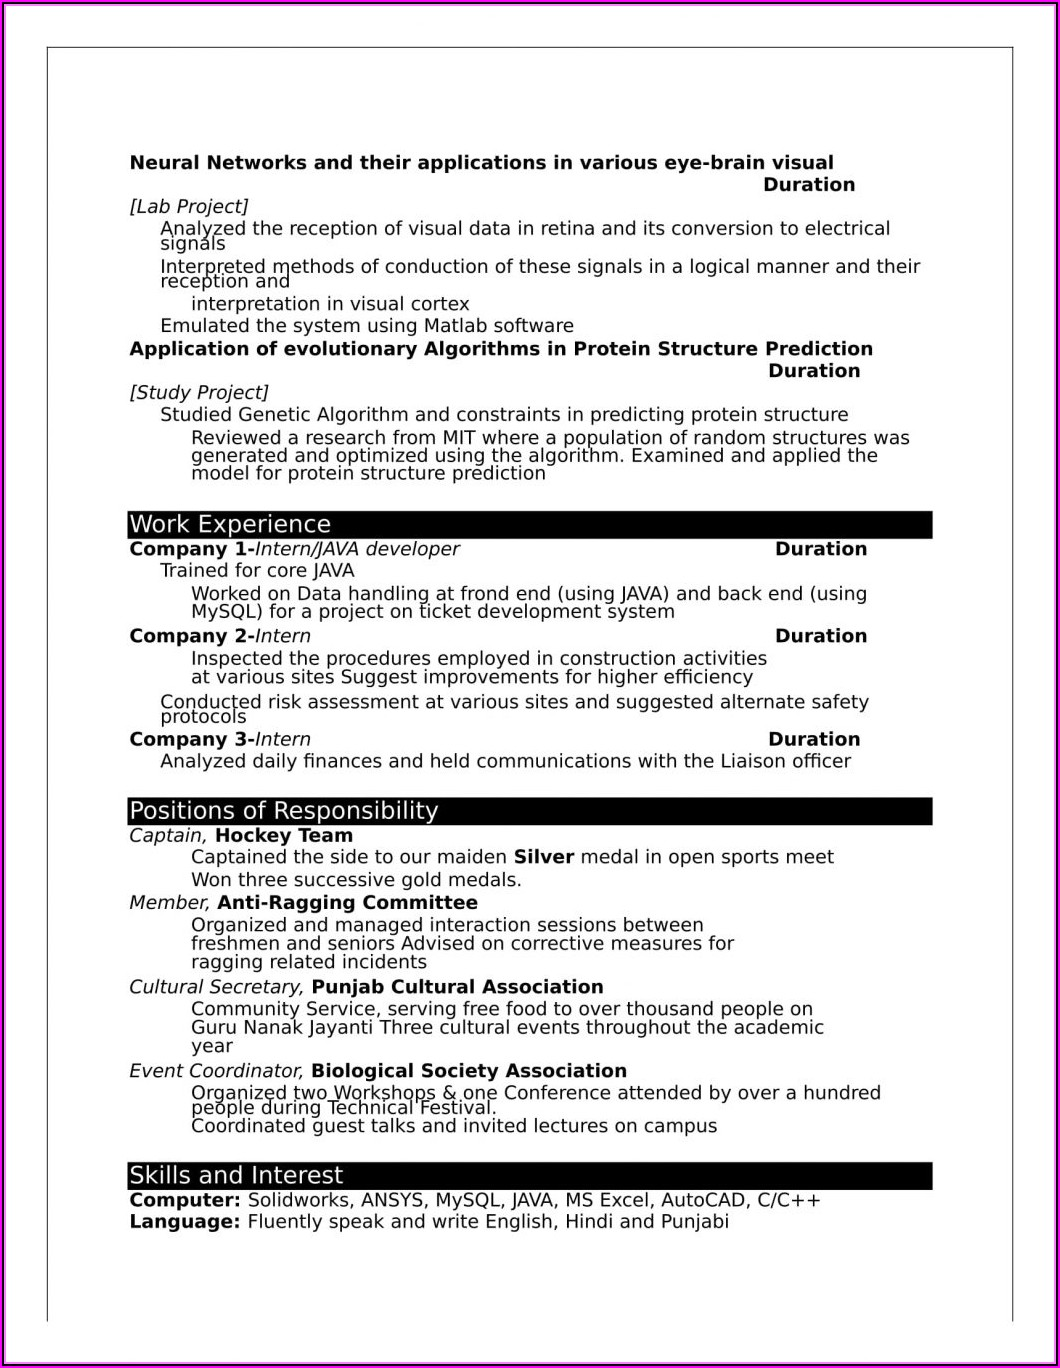 Resume Format For Freshers In Ms Word Free Download